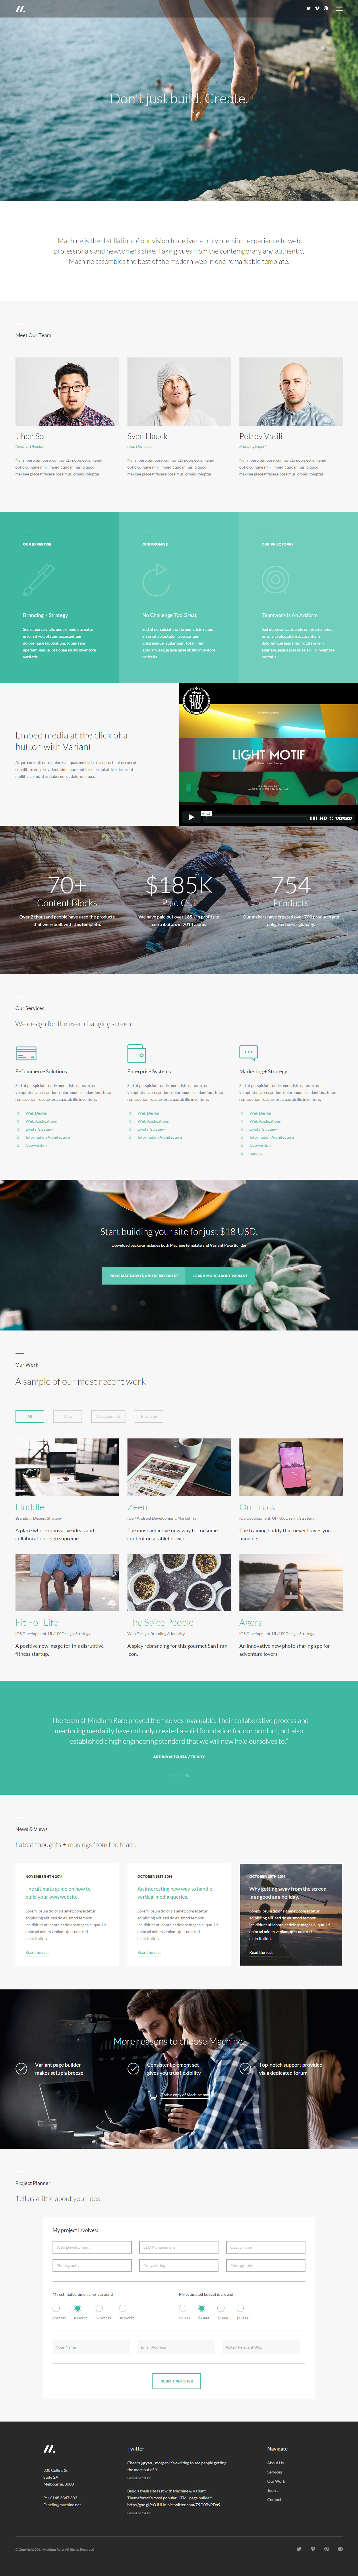 40 Best HTML5 One Page Website Templates 2017 - Responsive Miracle